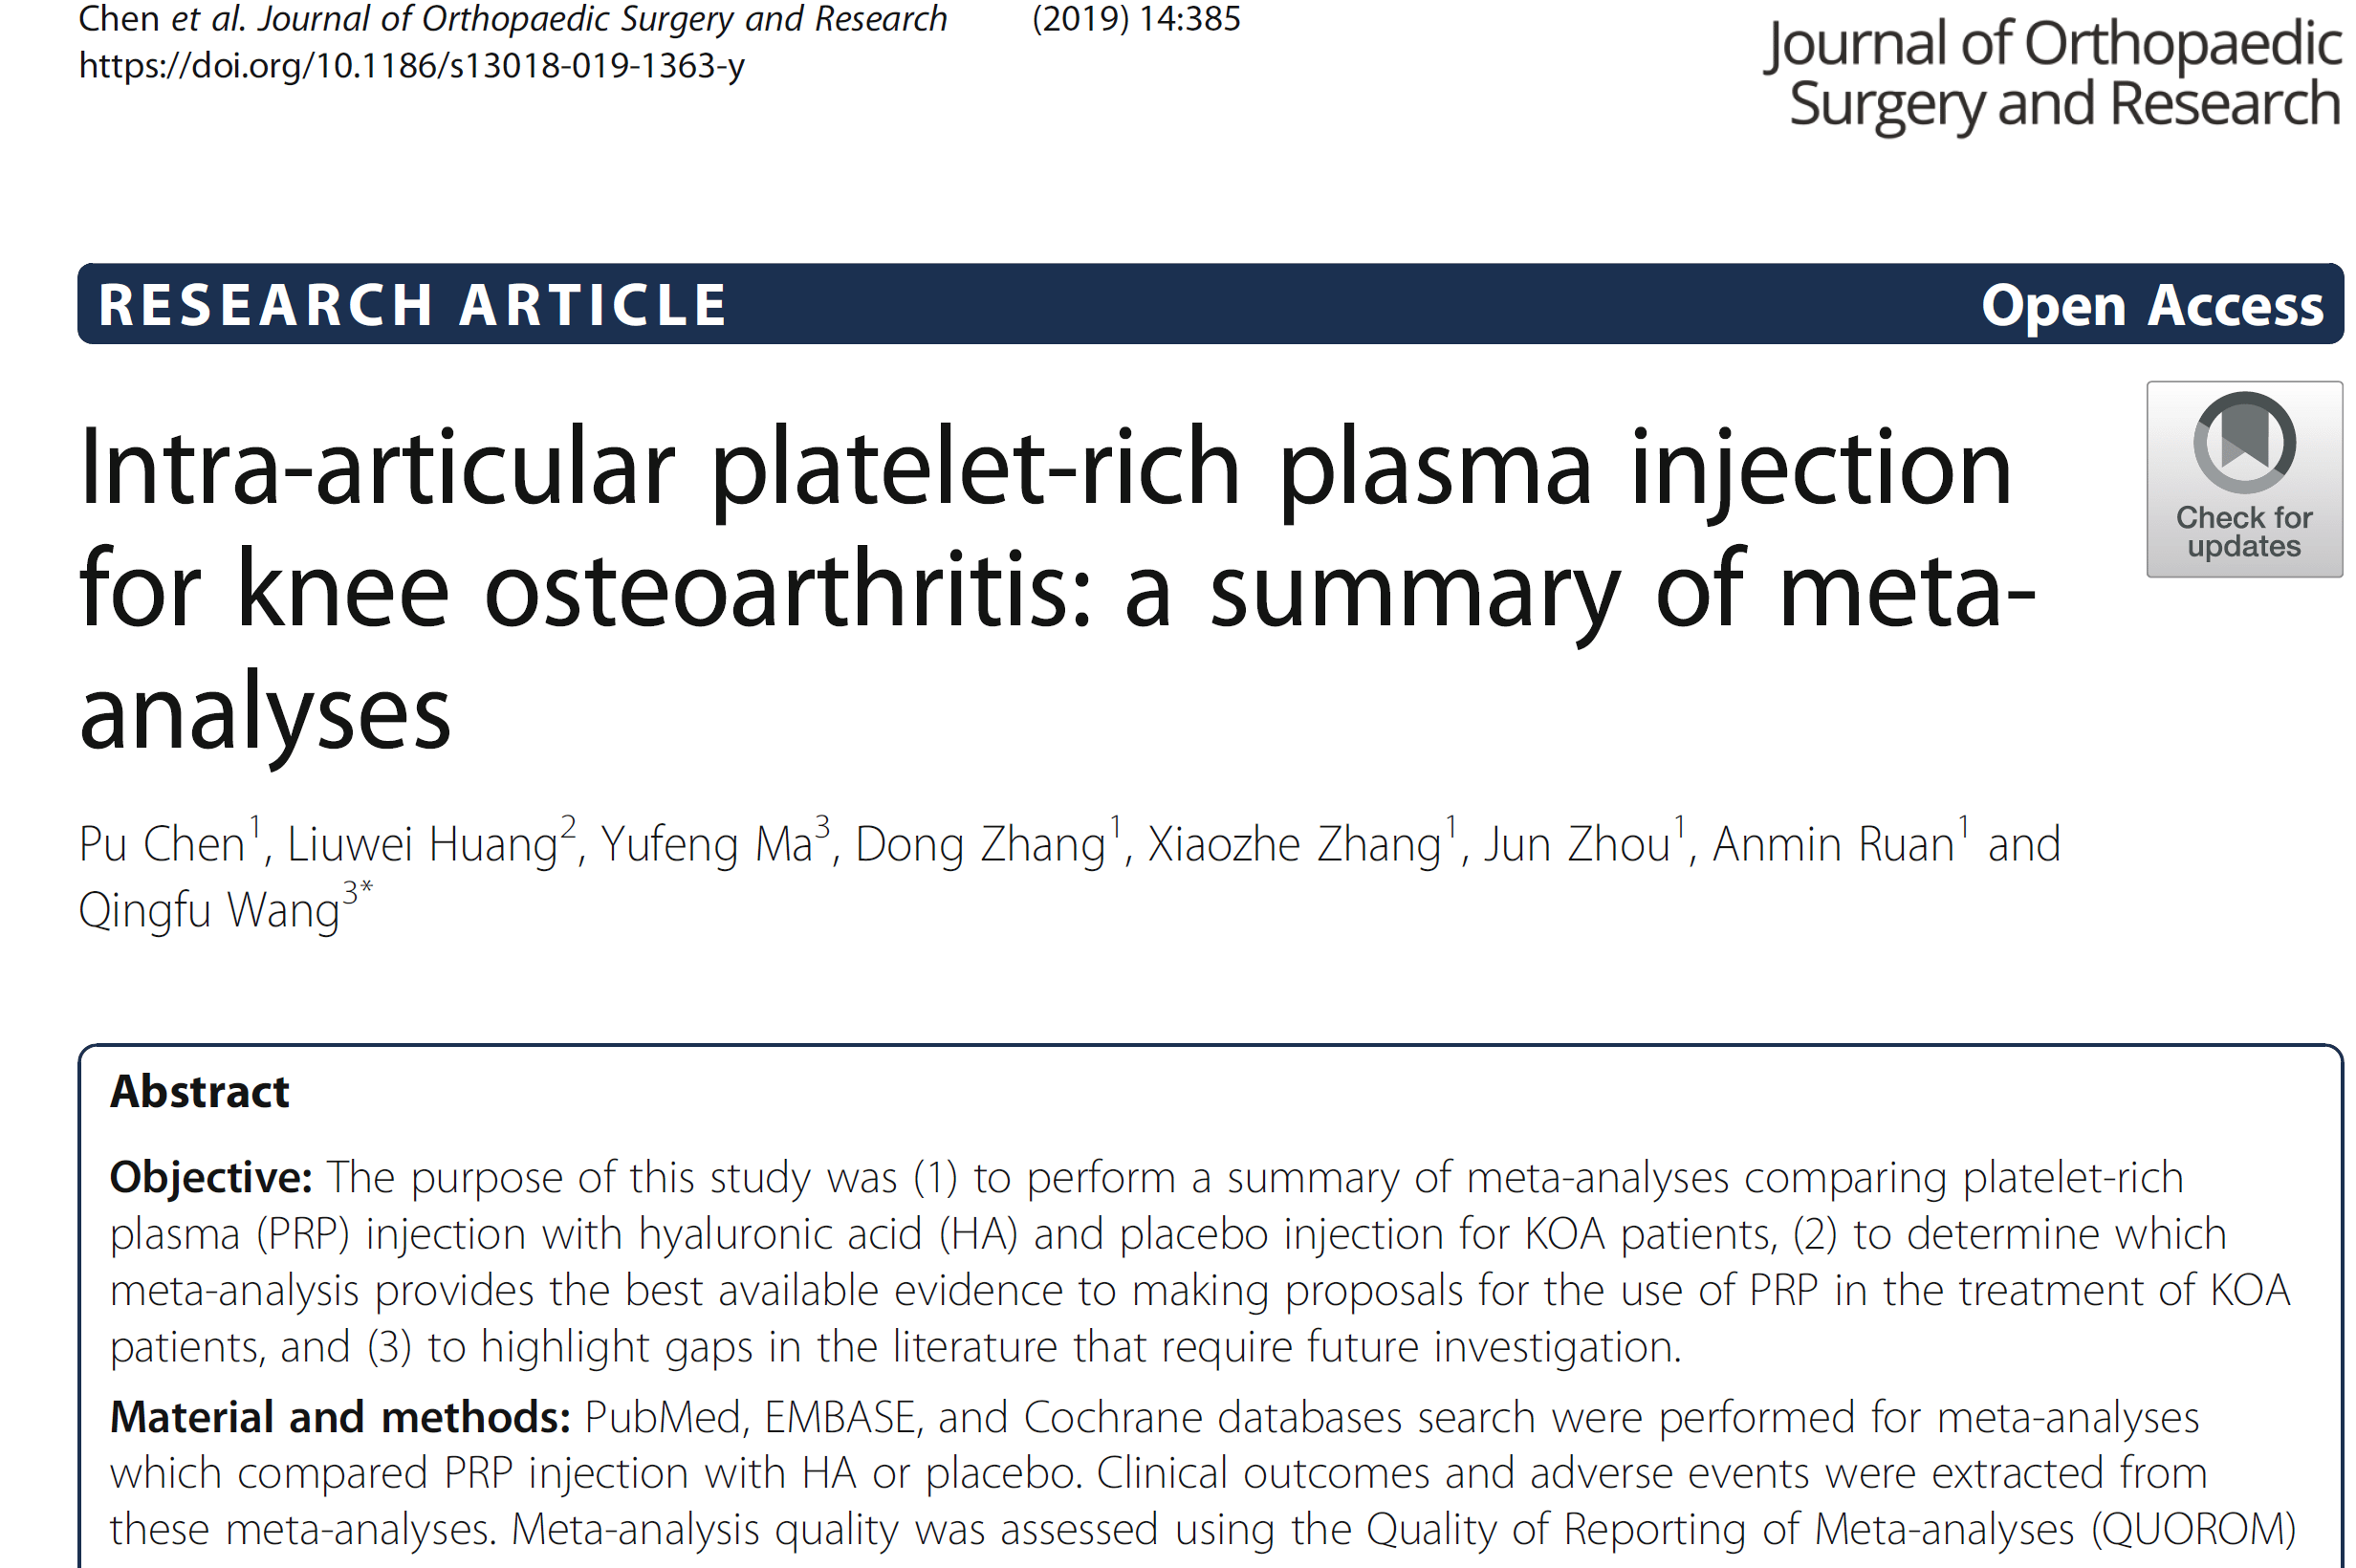 Intra-articular platelet-rich plasma injection for knee osteoarthritis a summary of metaanalyses